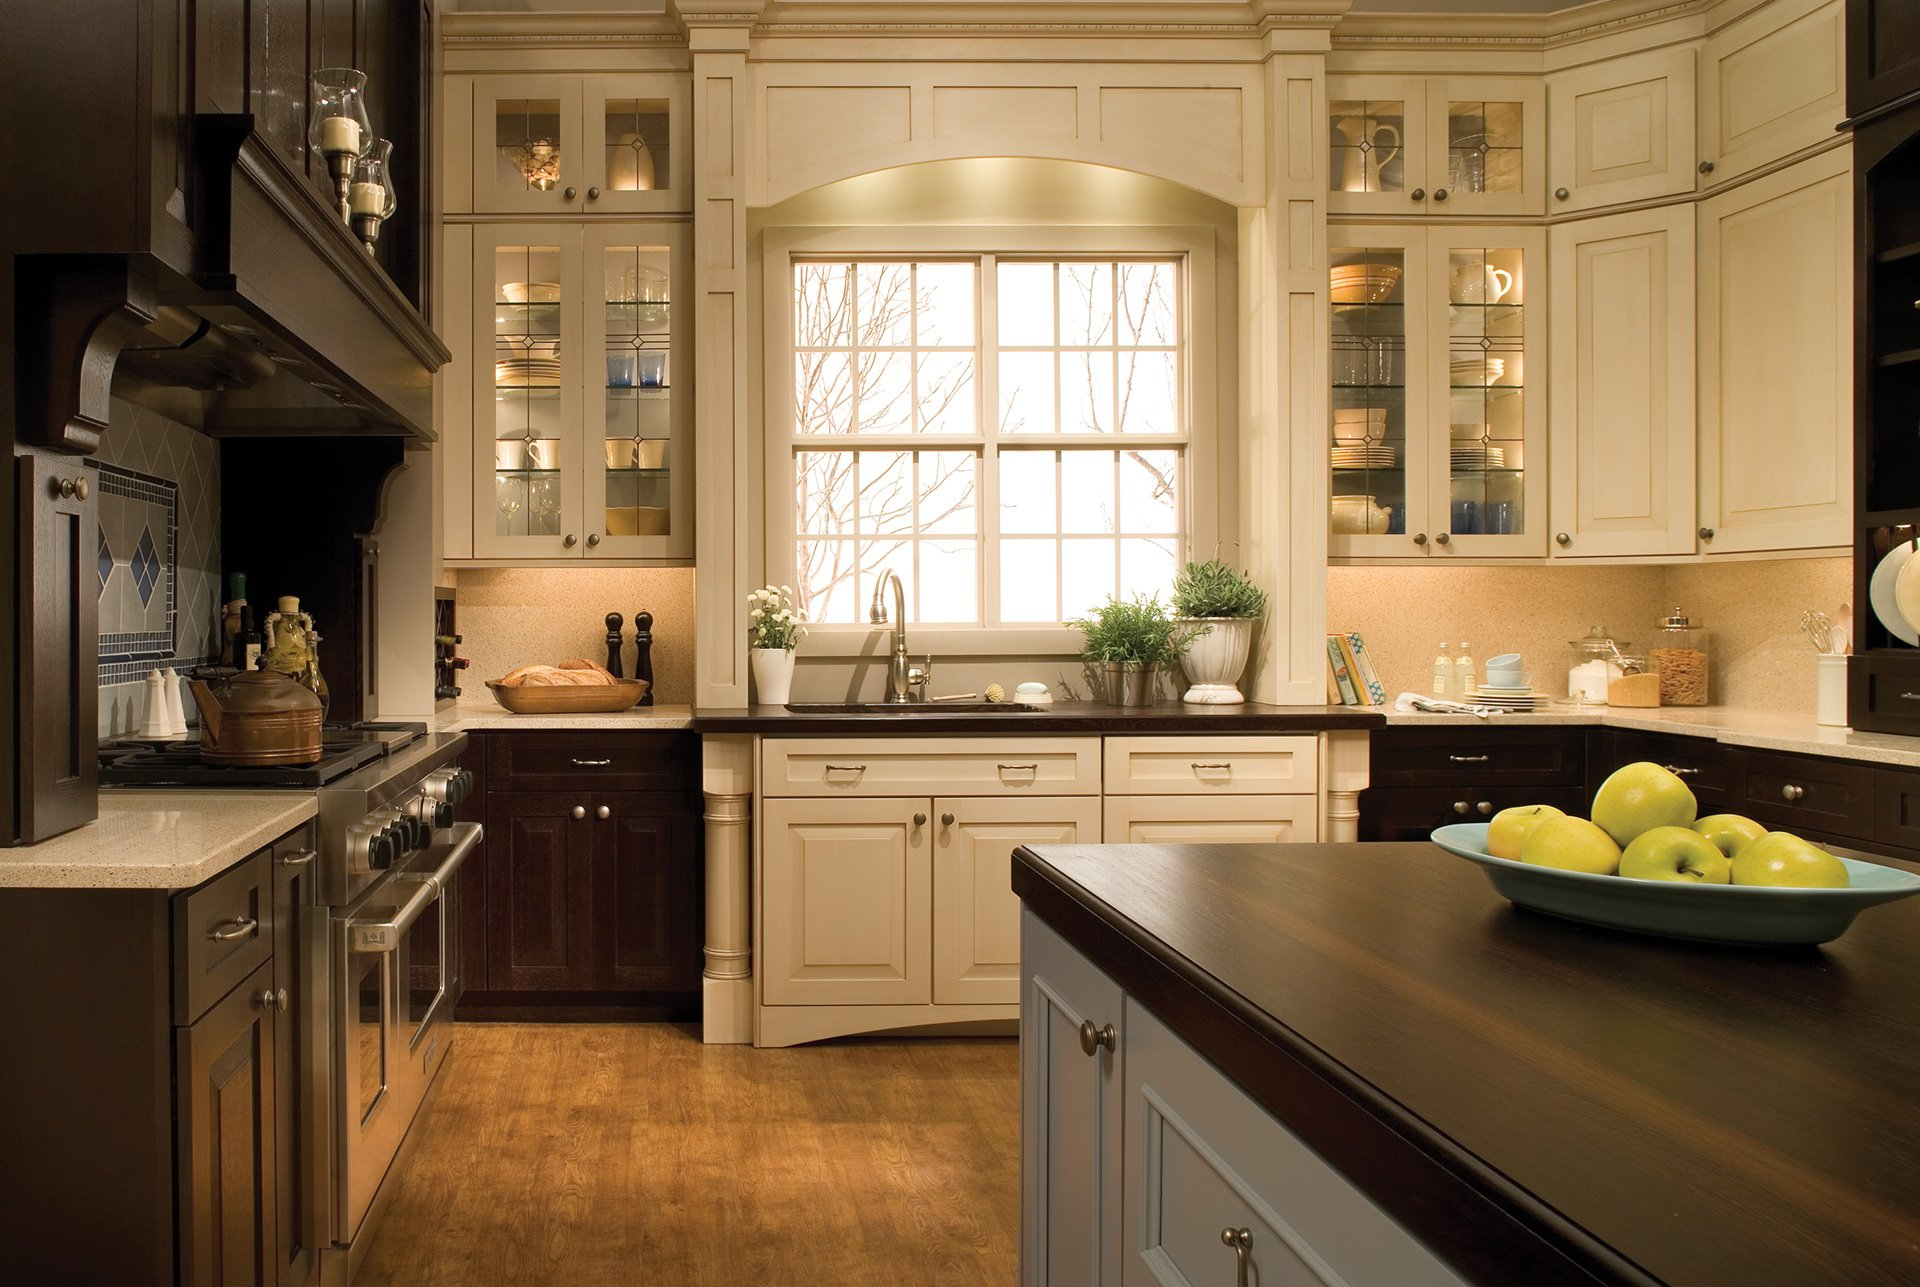 Campbells Kitchen Cabinets Inc Photo Gallery  Lincoln NE